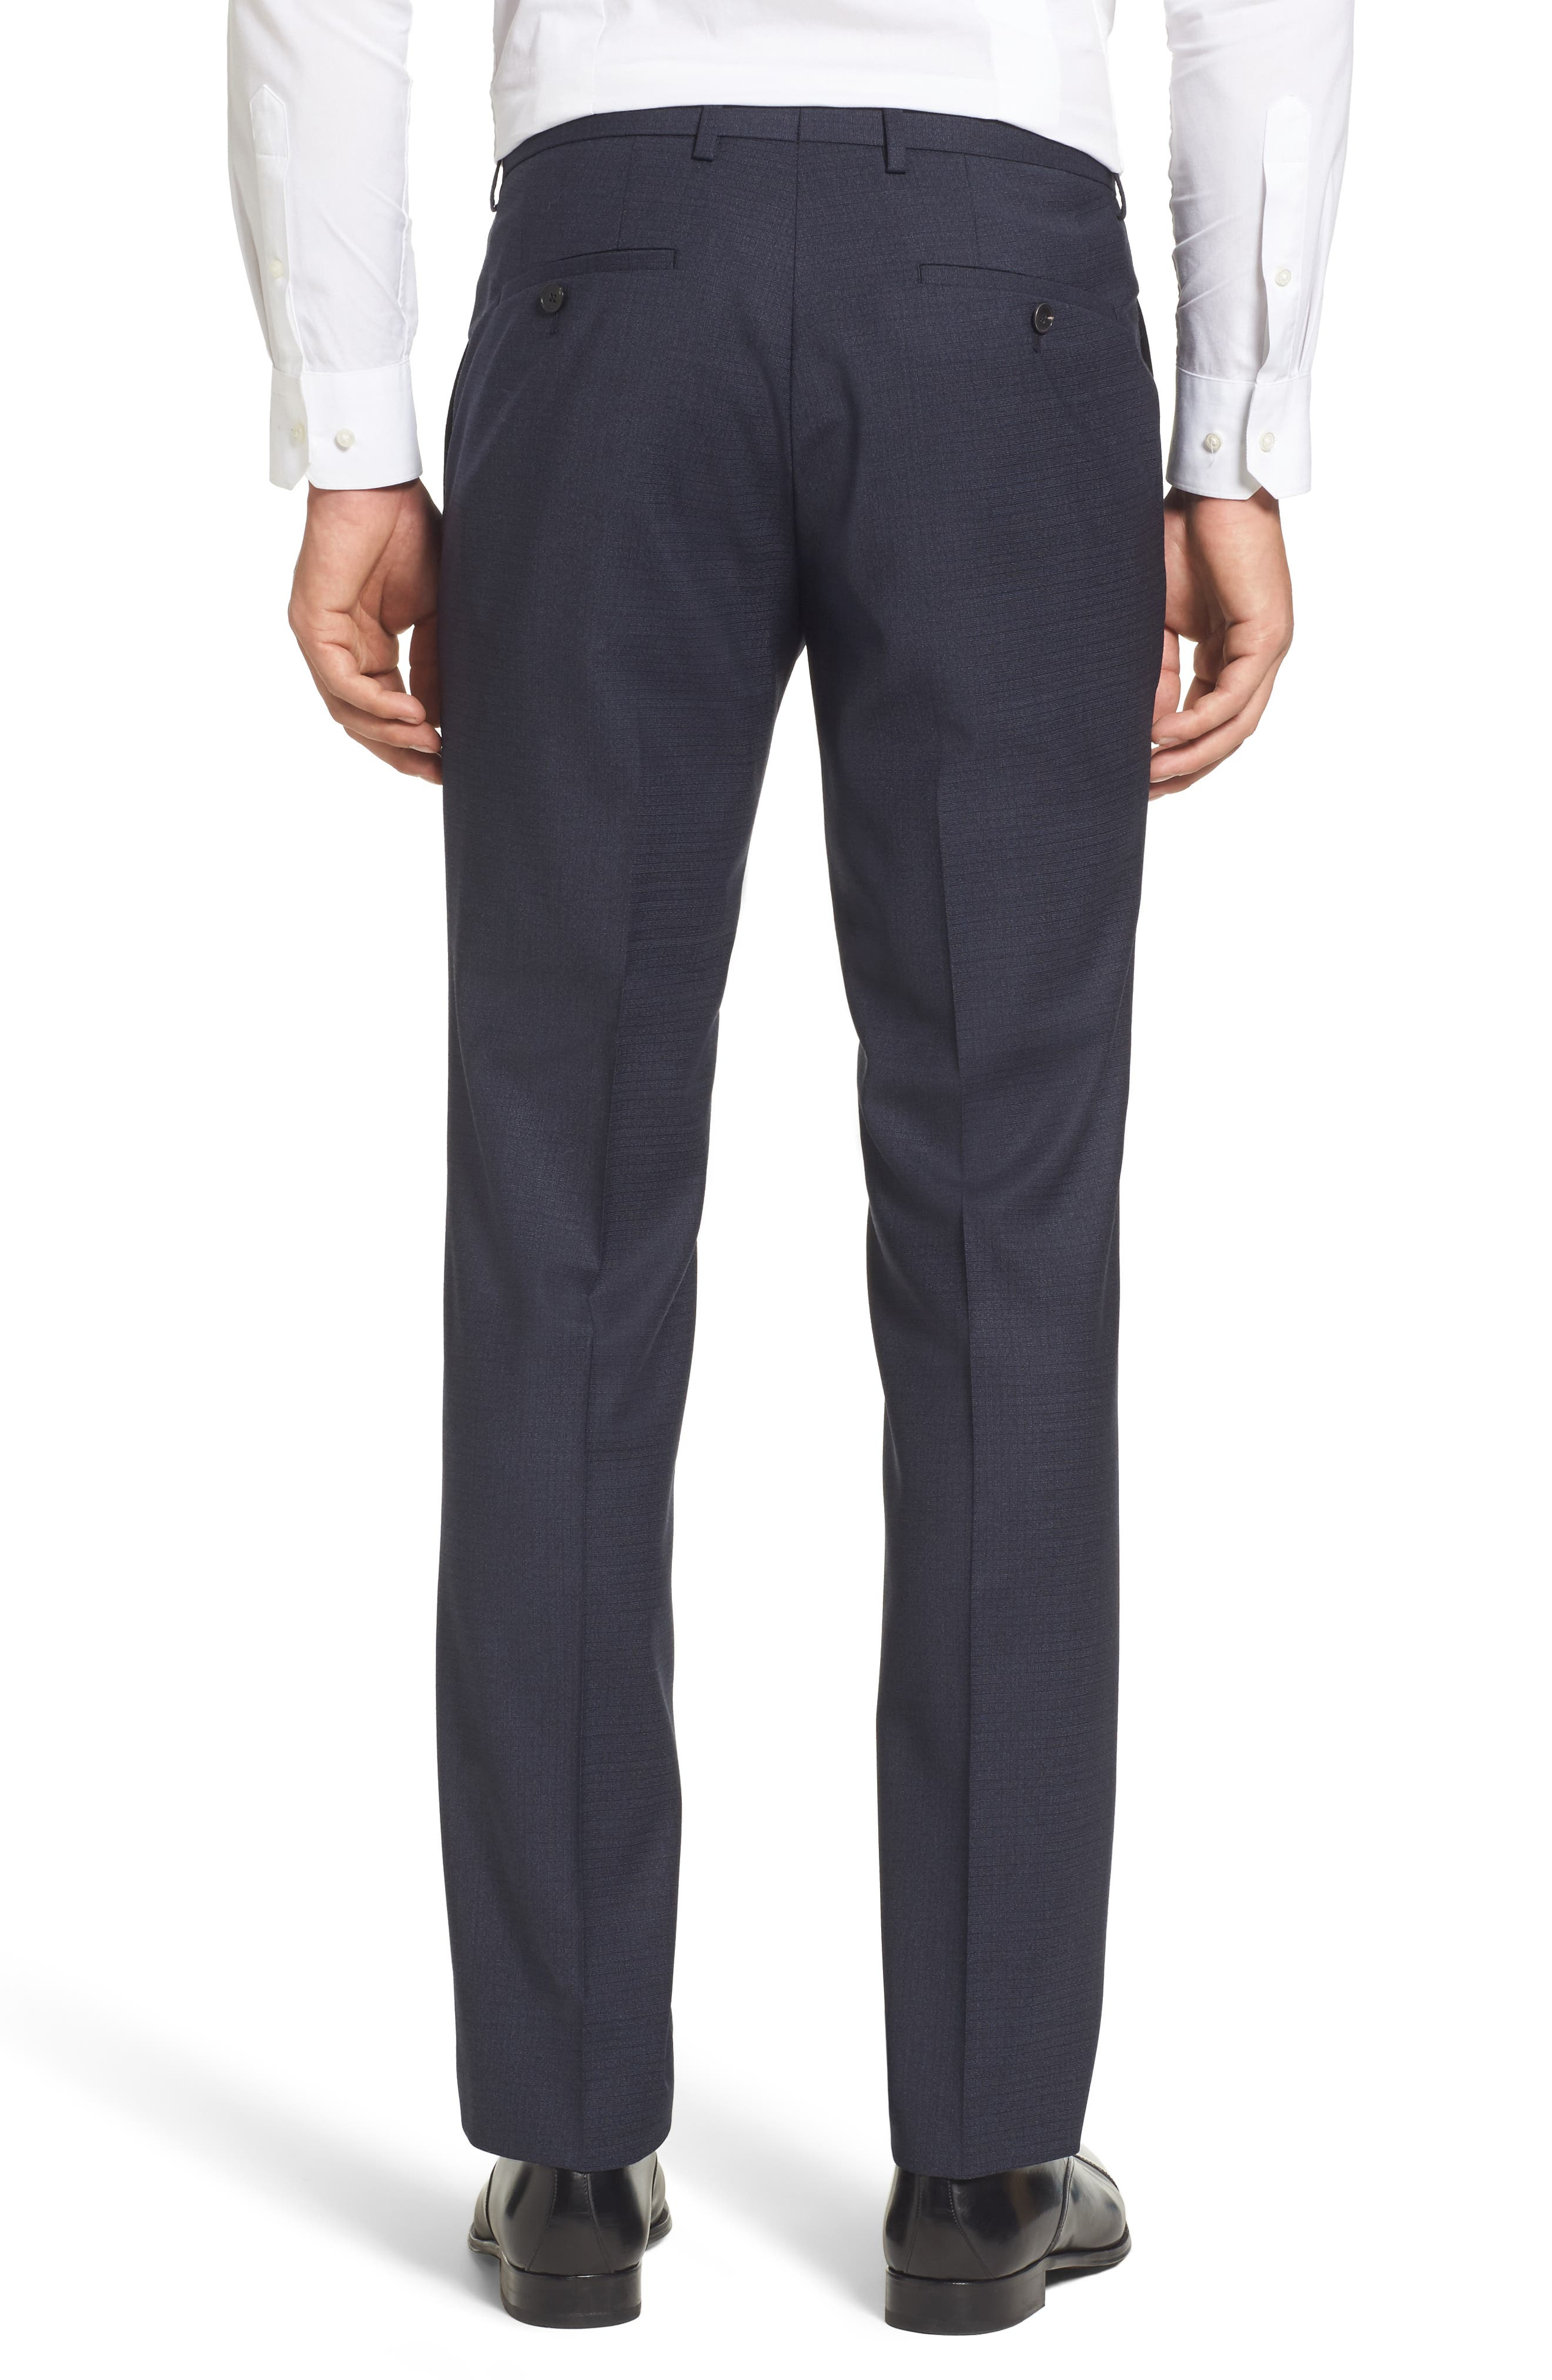 Leenon Classic Fit Plaid Stretch Wool Trousers,                             Alternate thumbnail 3, color,